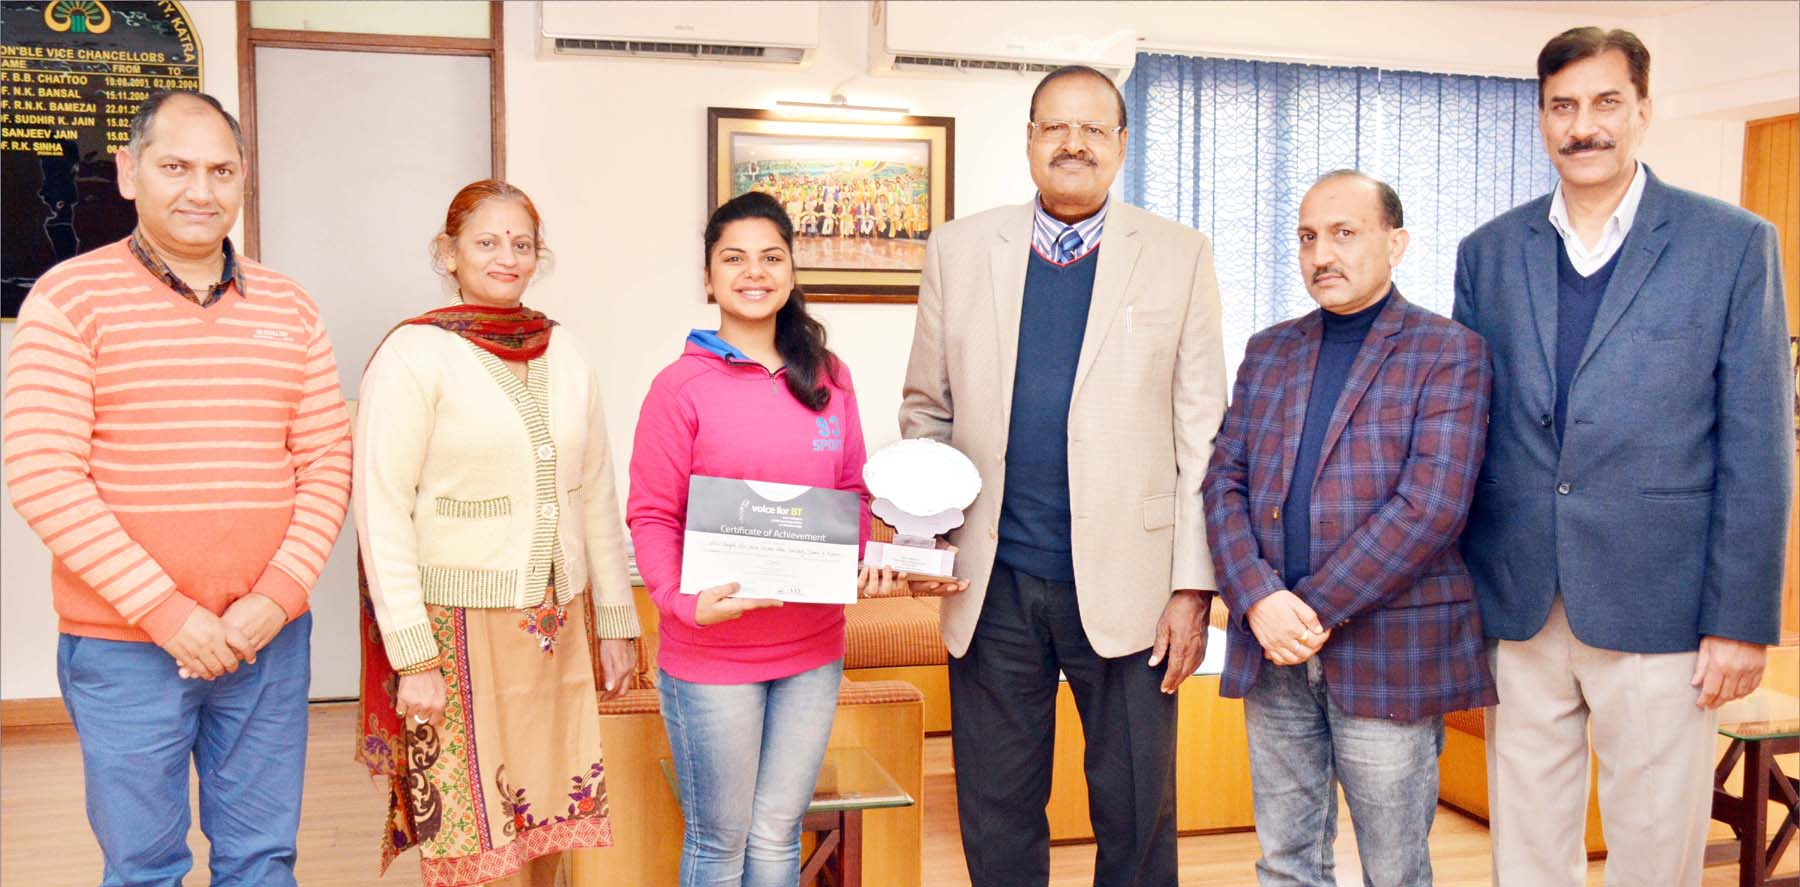 Shivi Badyal posing along with dignitaries and officials after winning 1st Prize in'Vote for BT'.